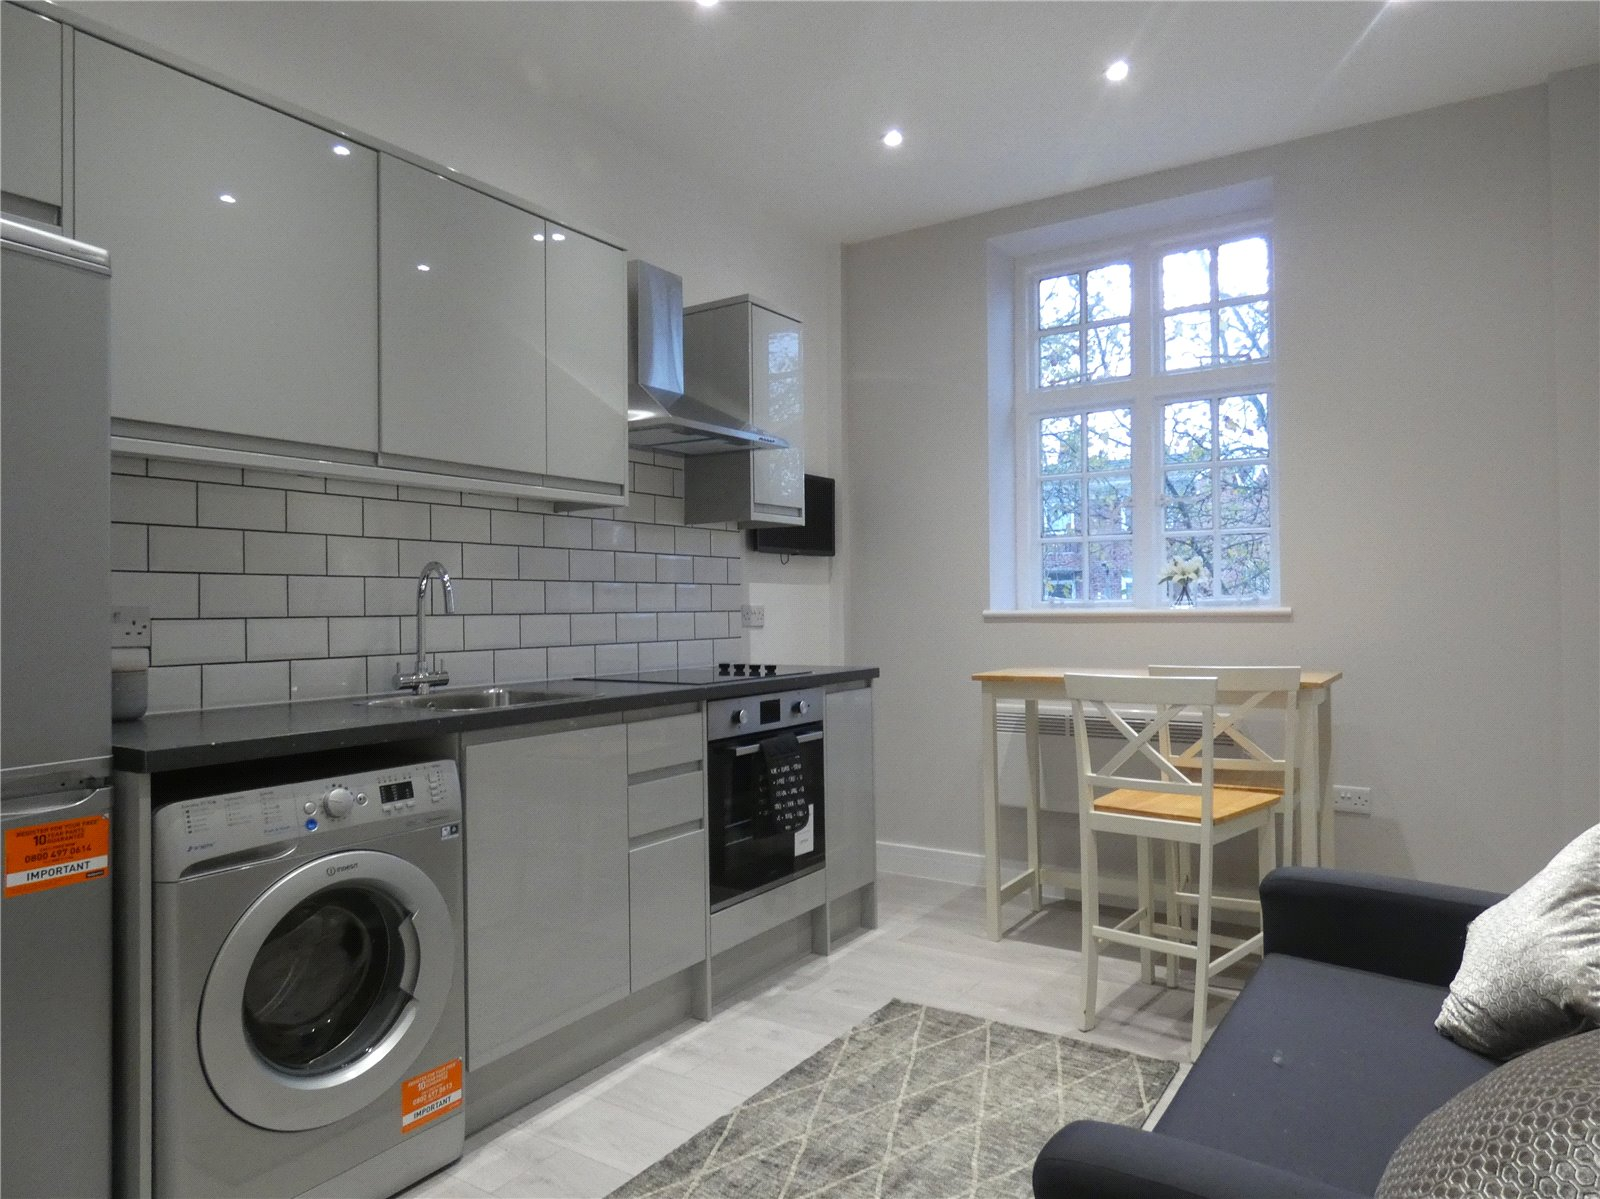 1 bed apartment to rent in Whetstone, N20 9HW  - Property Image 2